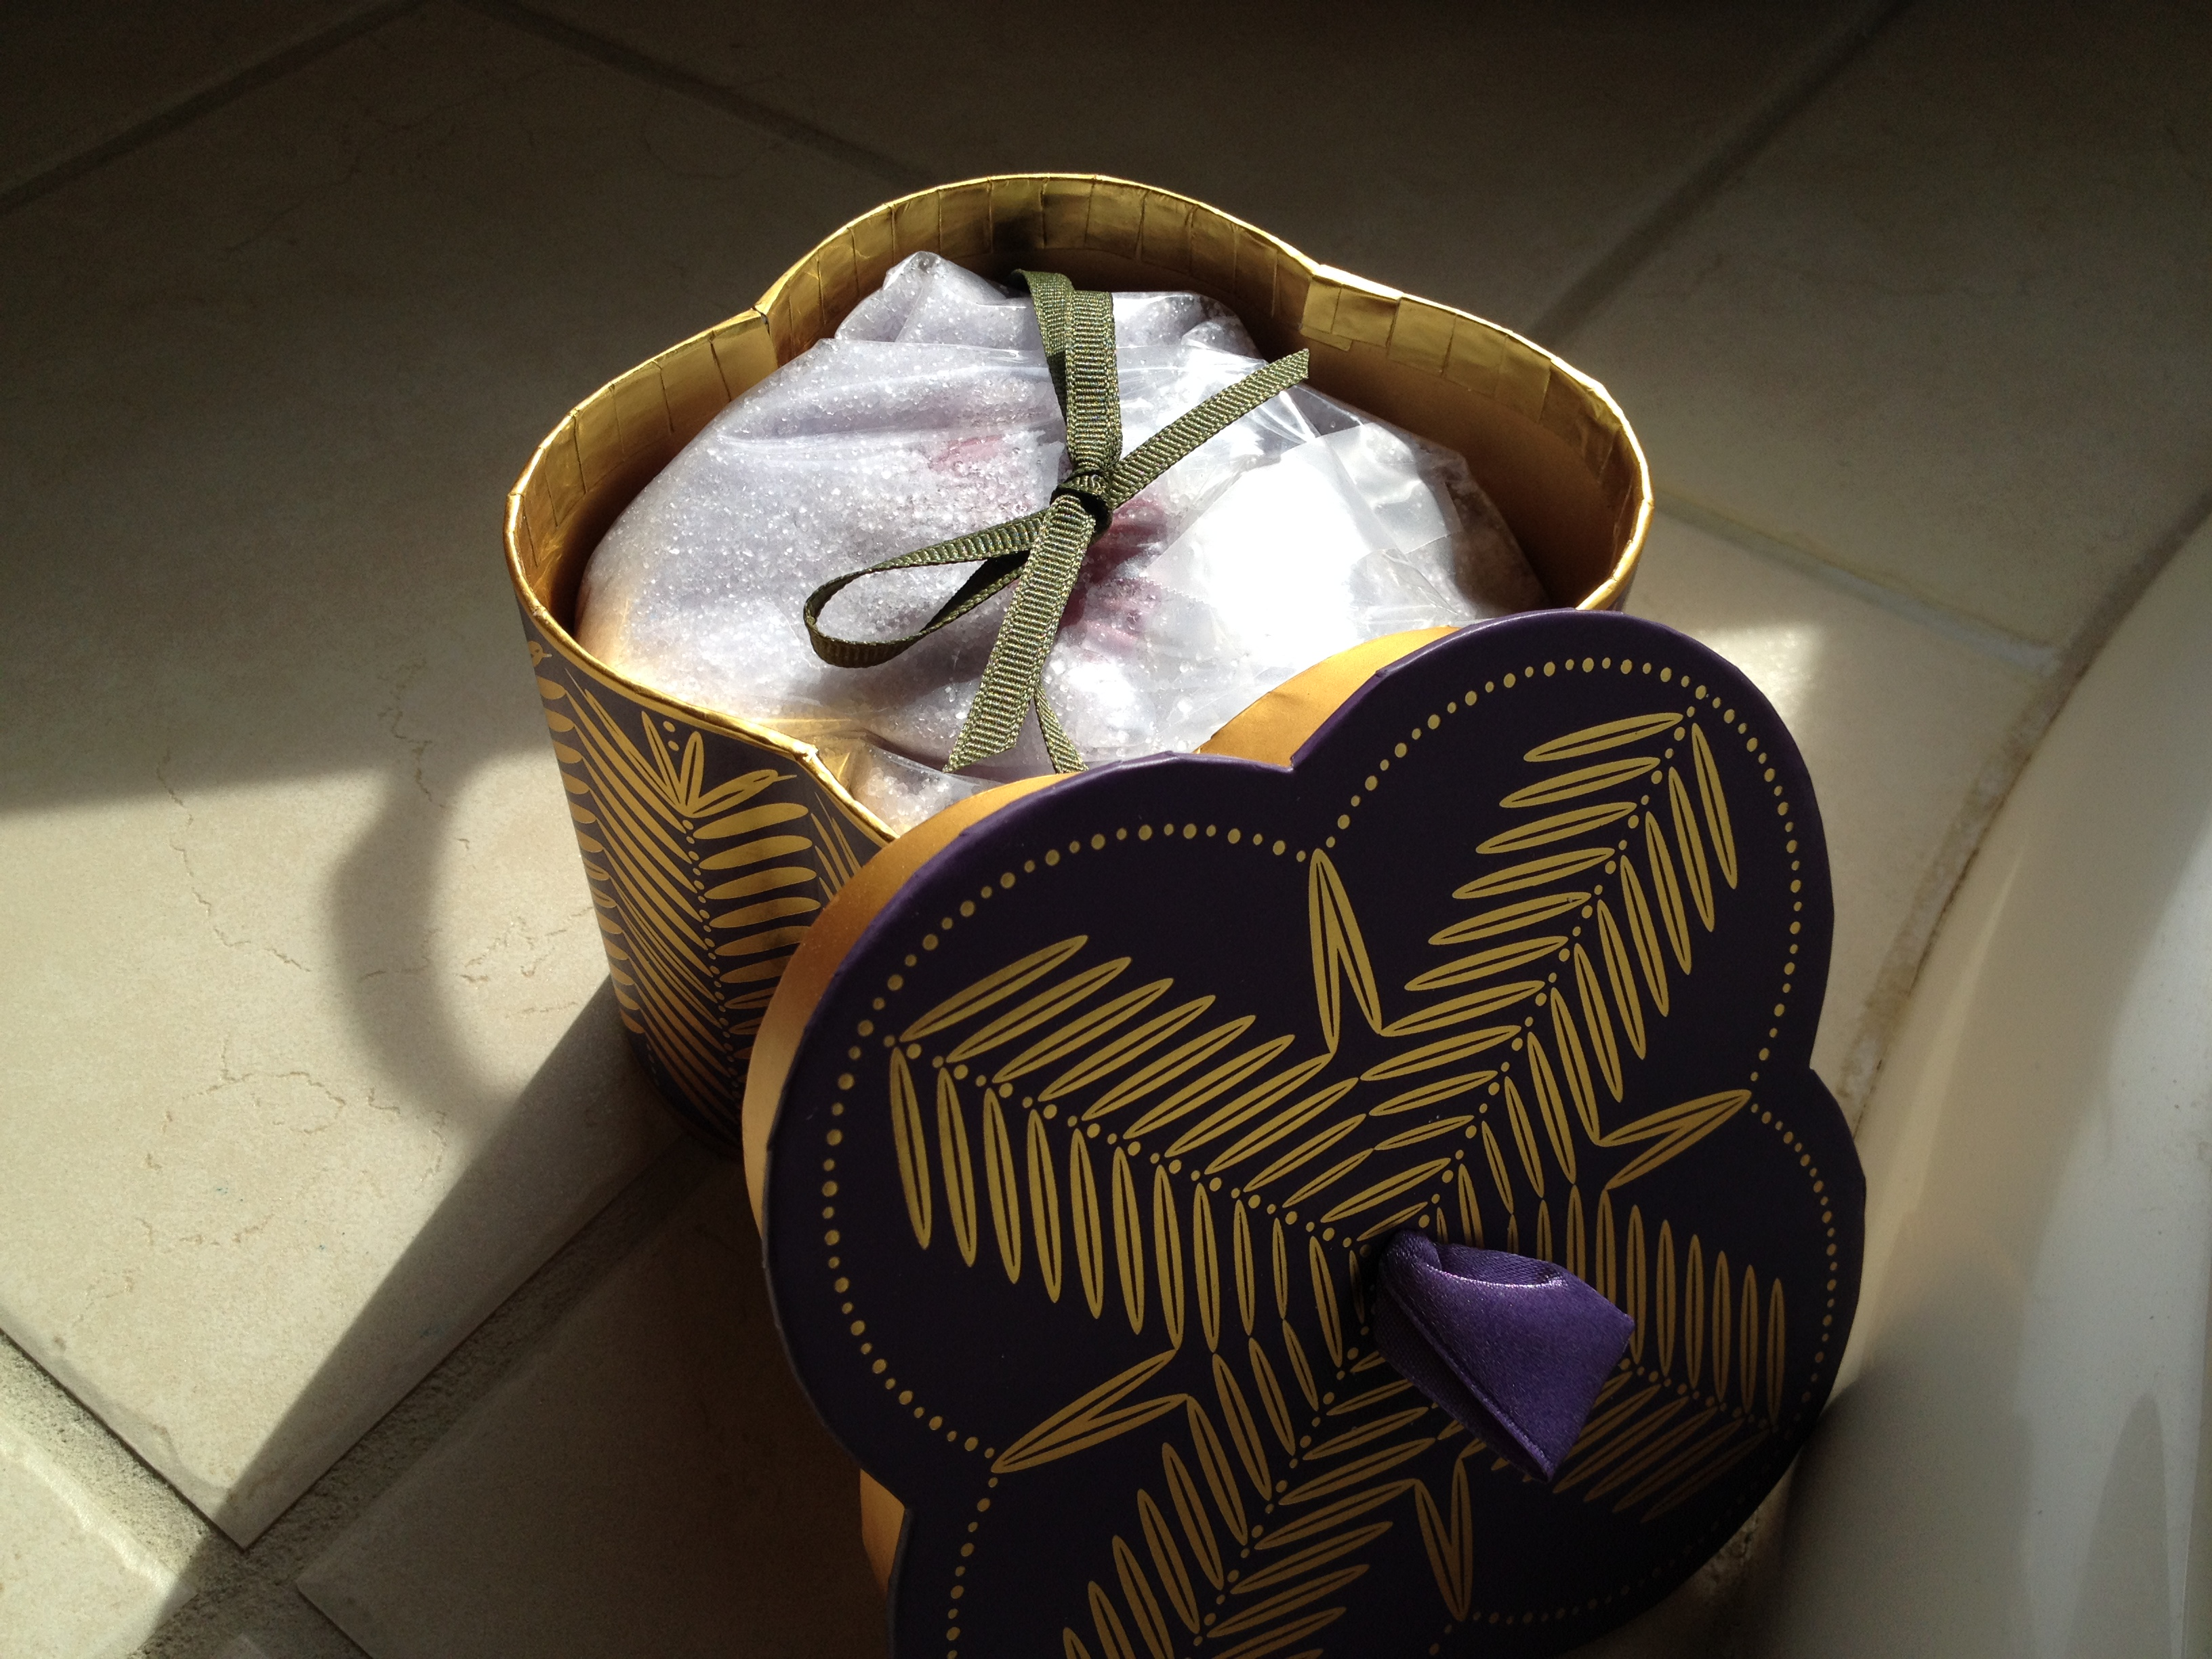 Lavender and Rosemary Bath Salts $45